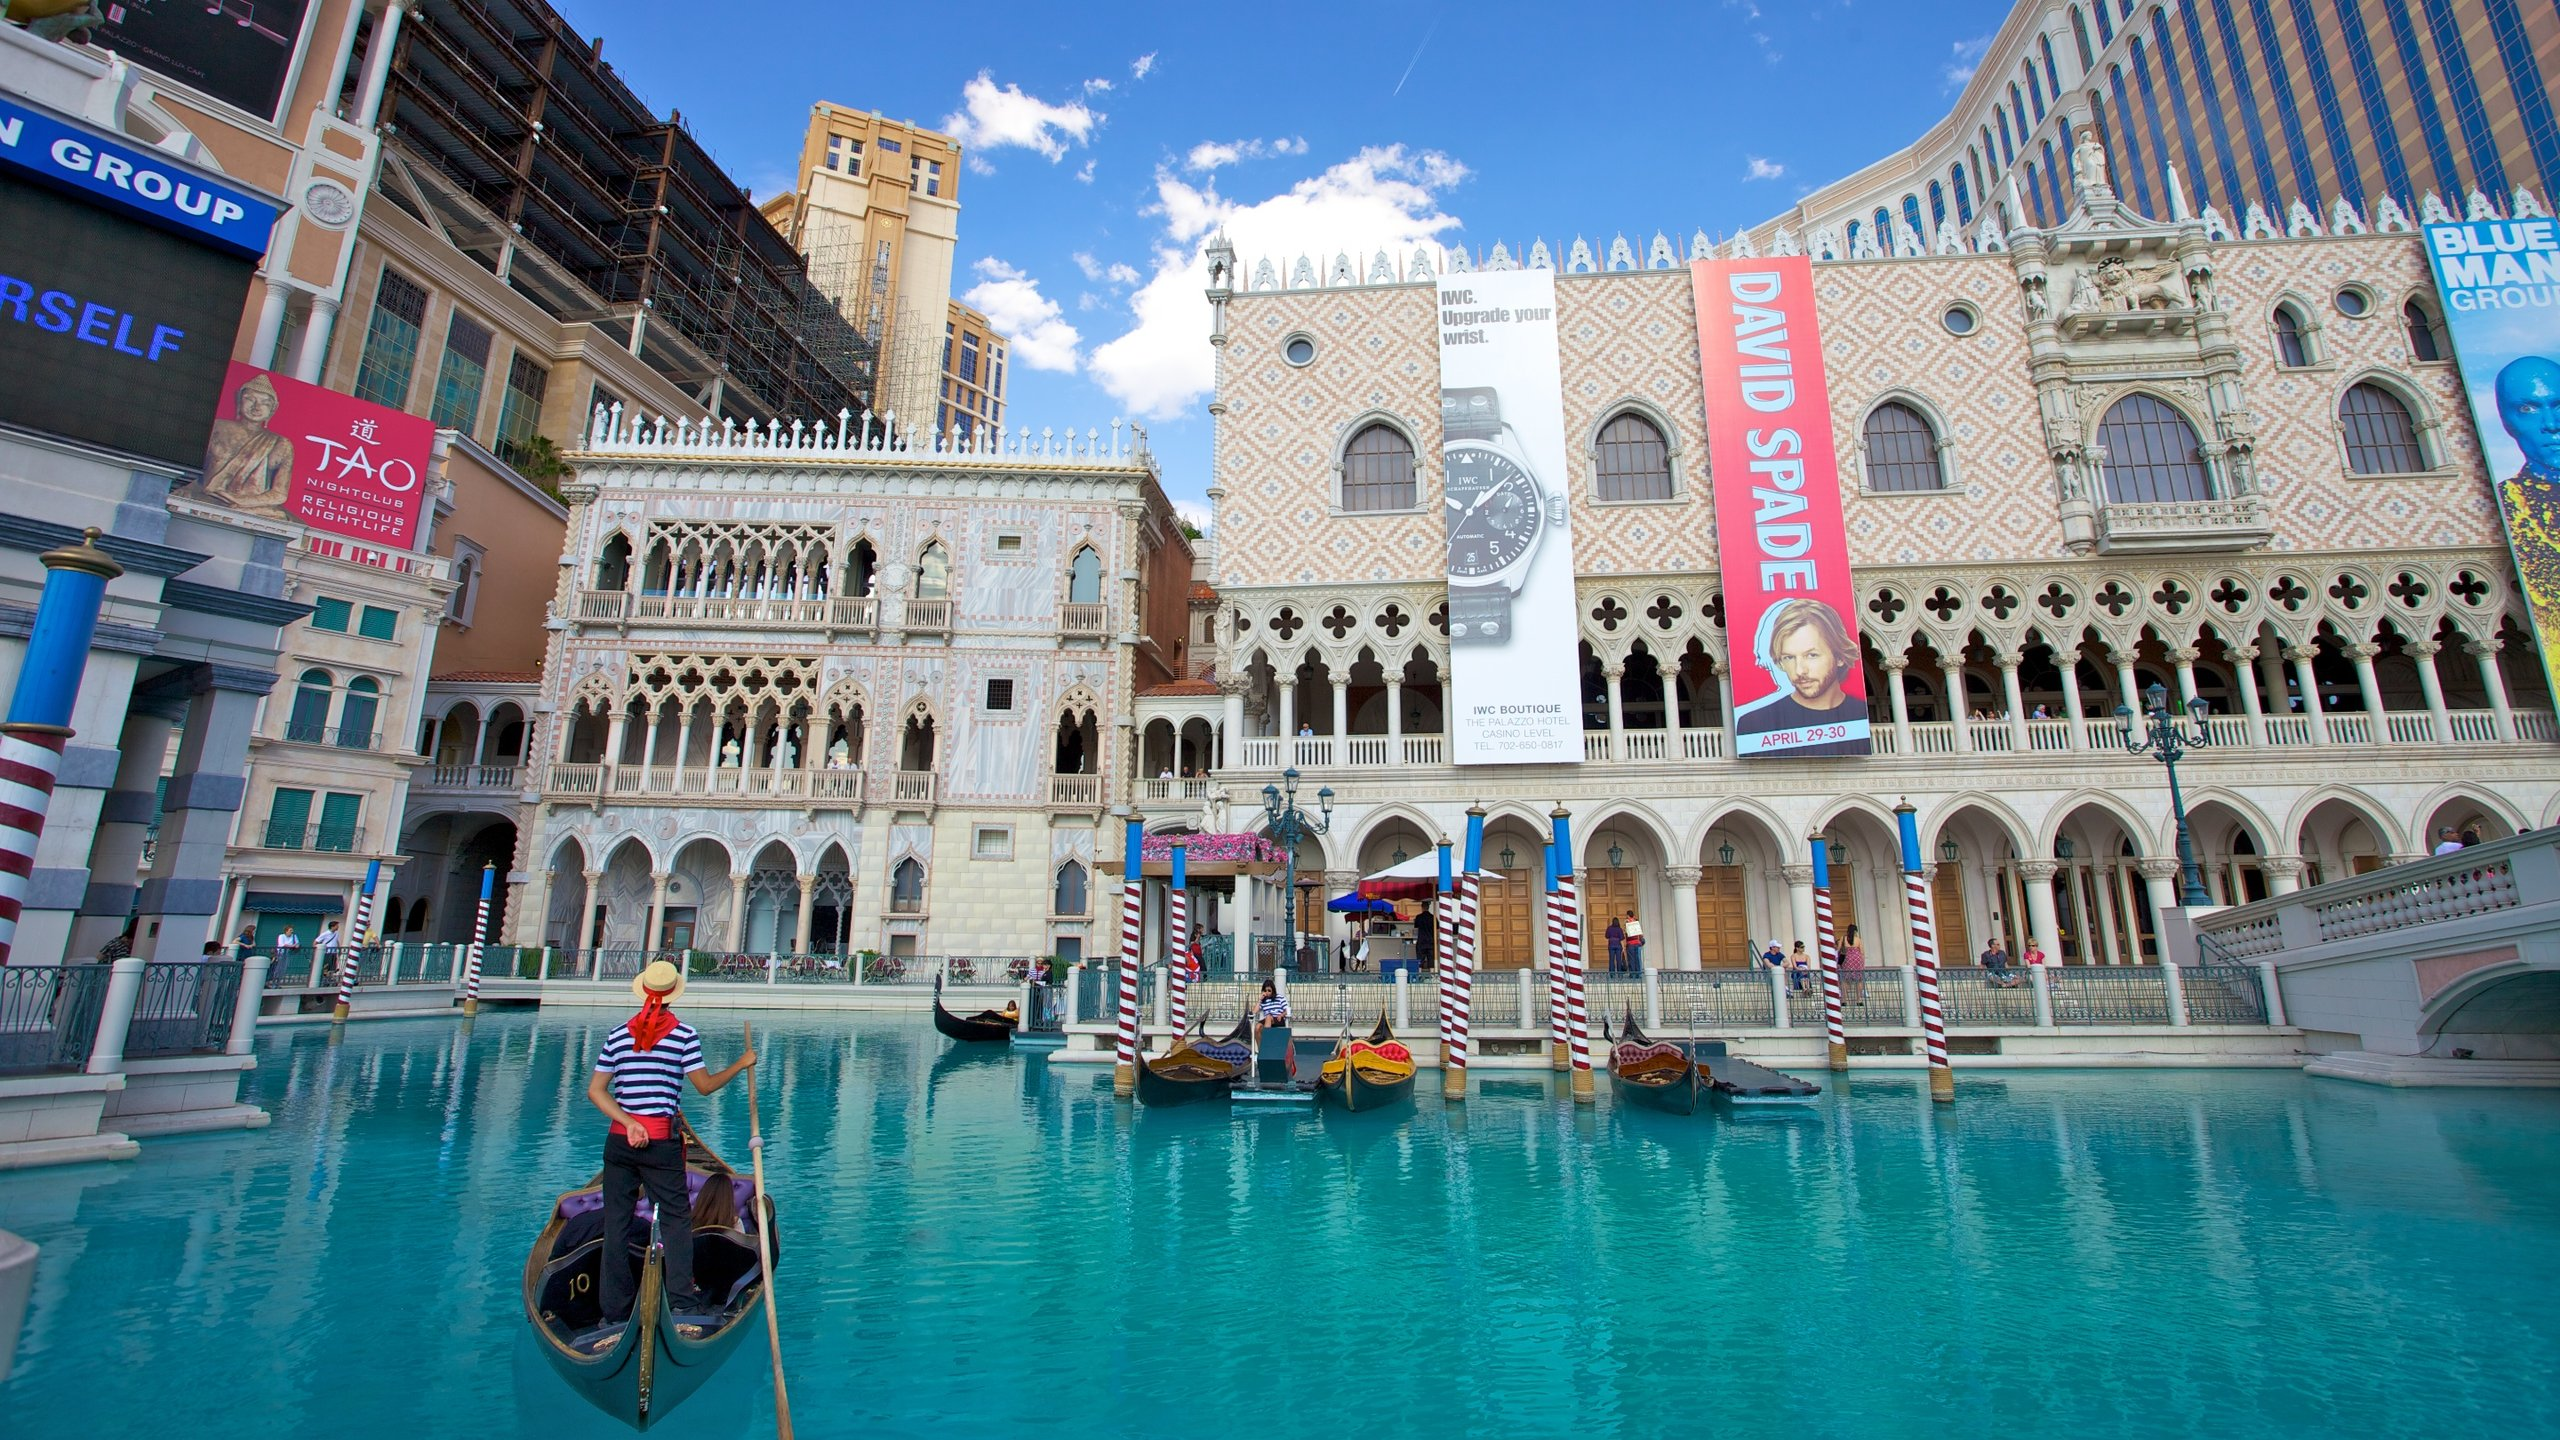 Top 10 las vegas strip hotels with a swimming pool 2019 - Best swimming pools in las vegas strip ...